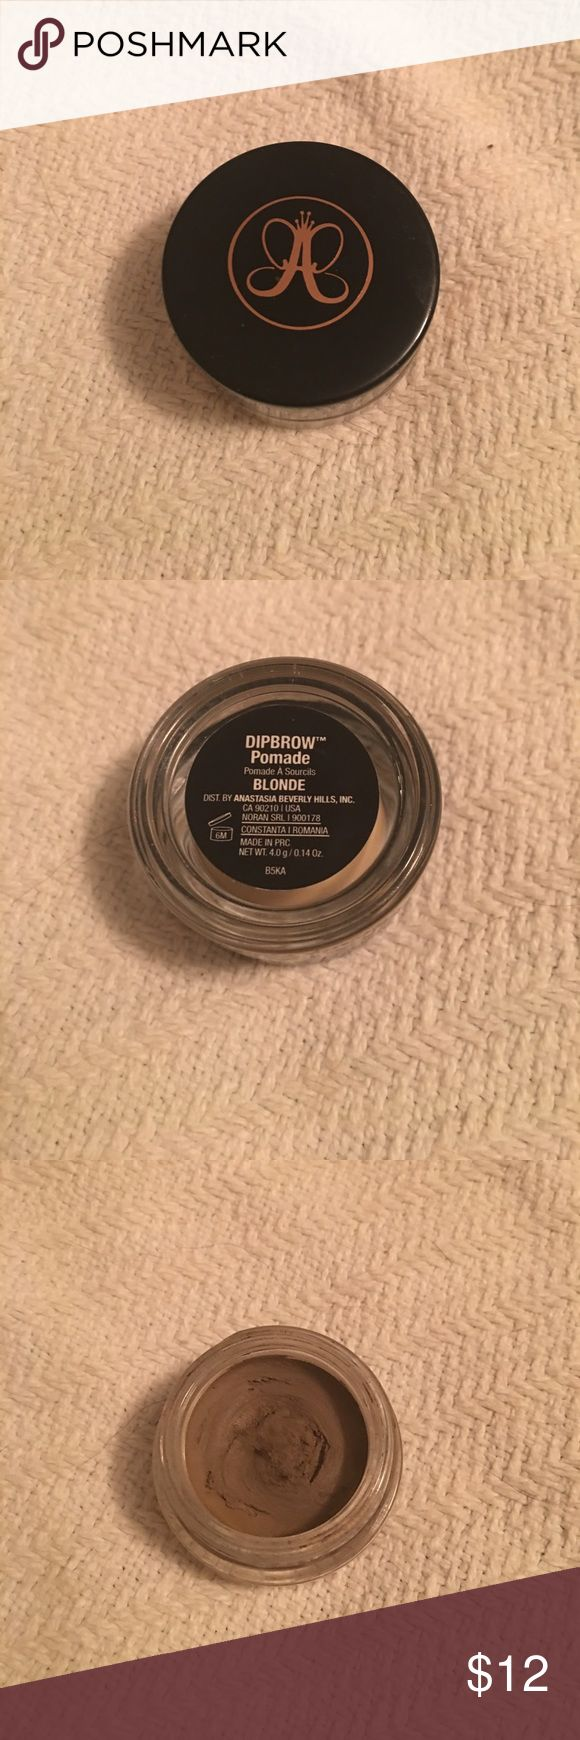 Anastasia Dip Brow Pomade in Blonde EUC lightly used very little product. Smudge free water proof formula that makes doing your brows fun and easy. Creamy product glides on. Anastasia Beverly Hills Makeup Eyebrow Filler